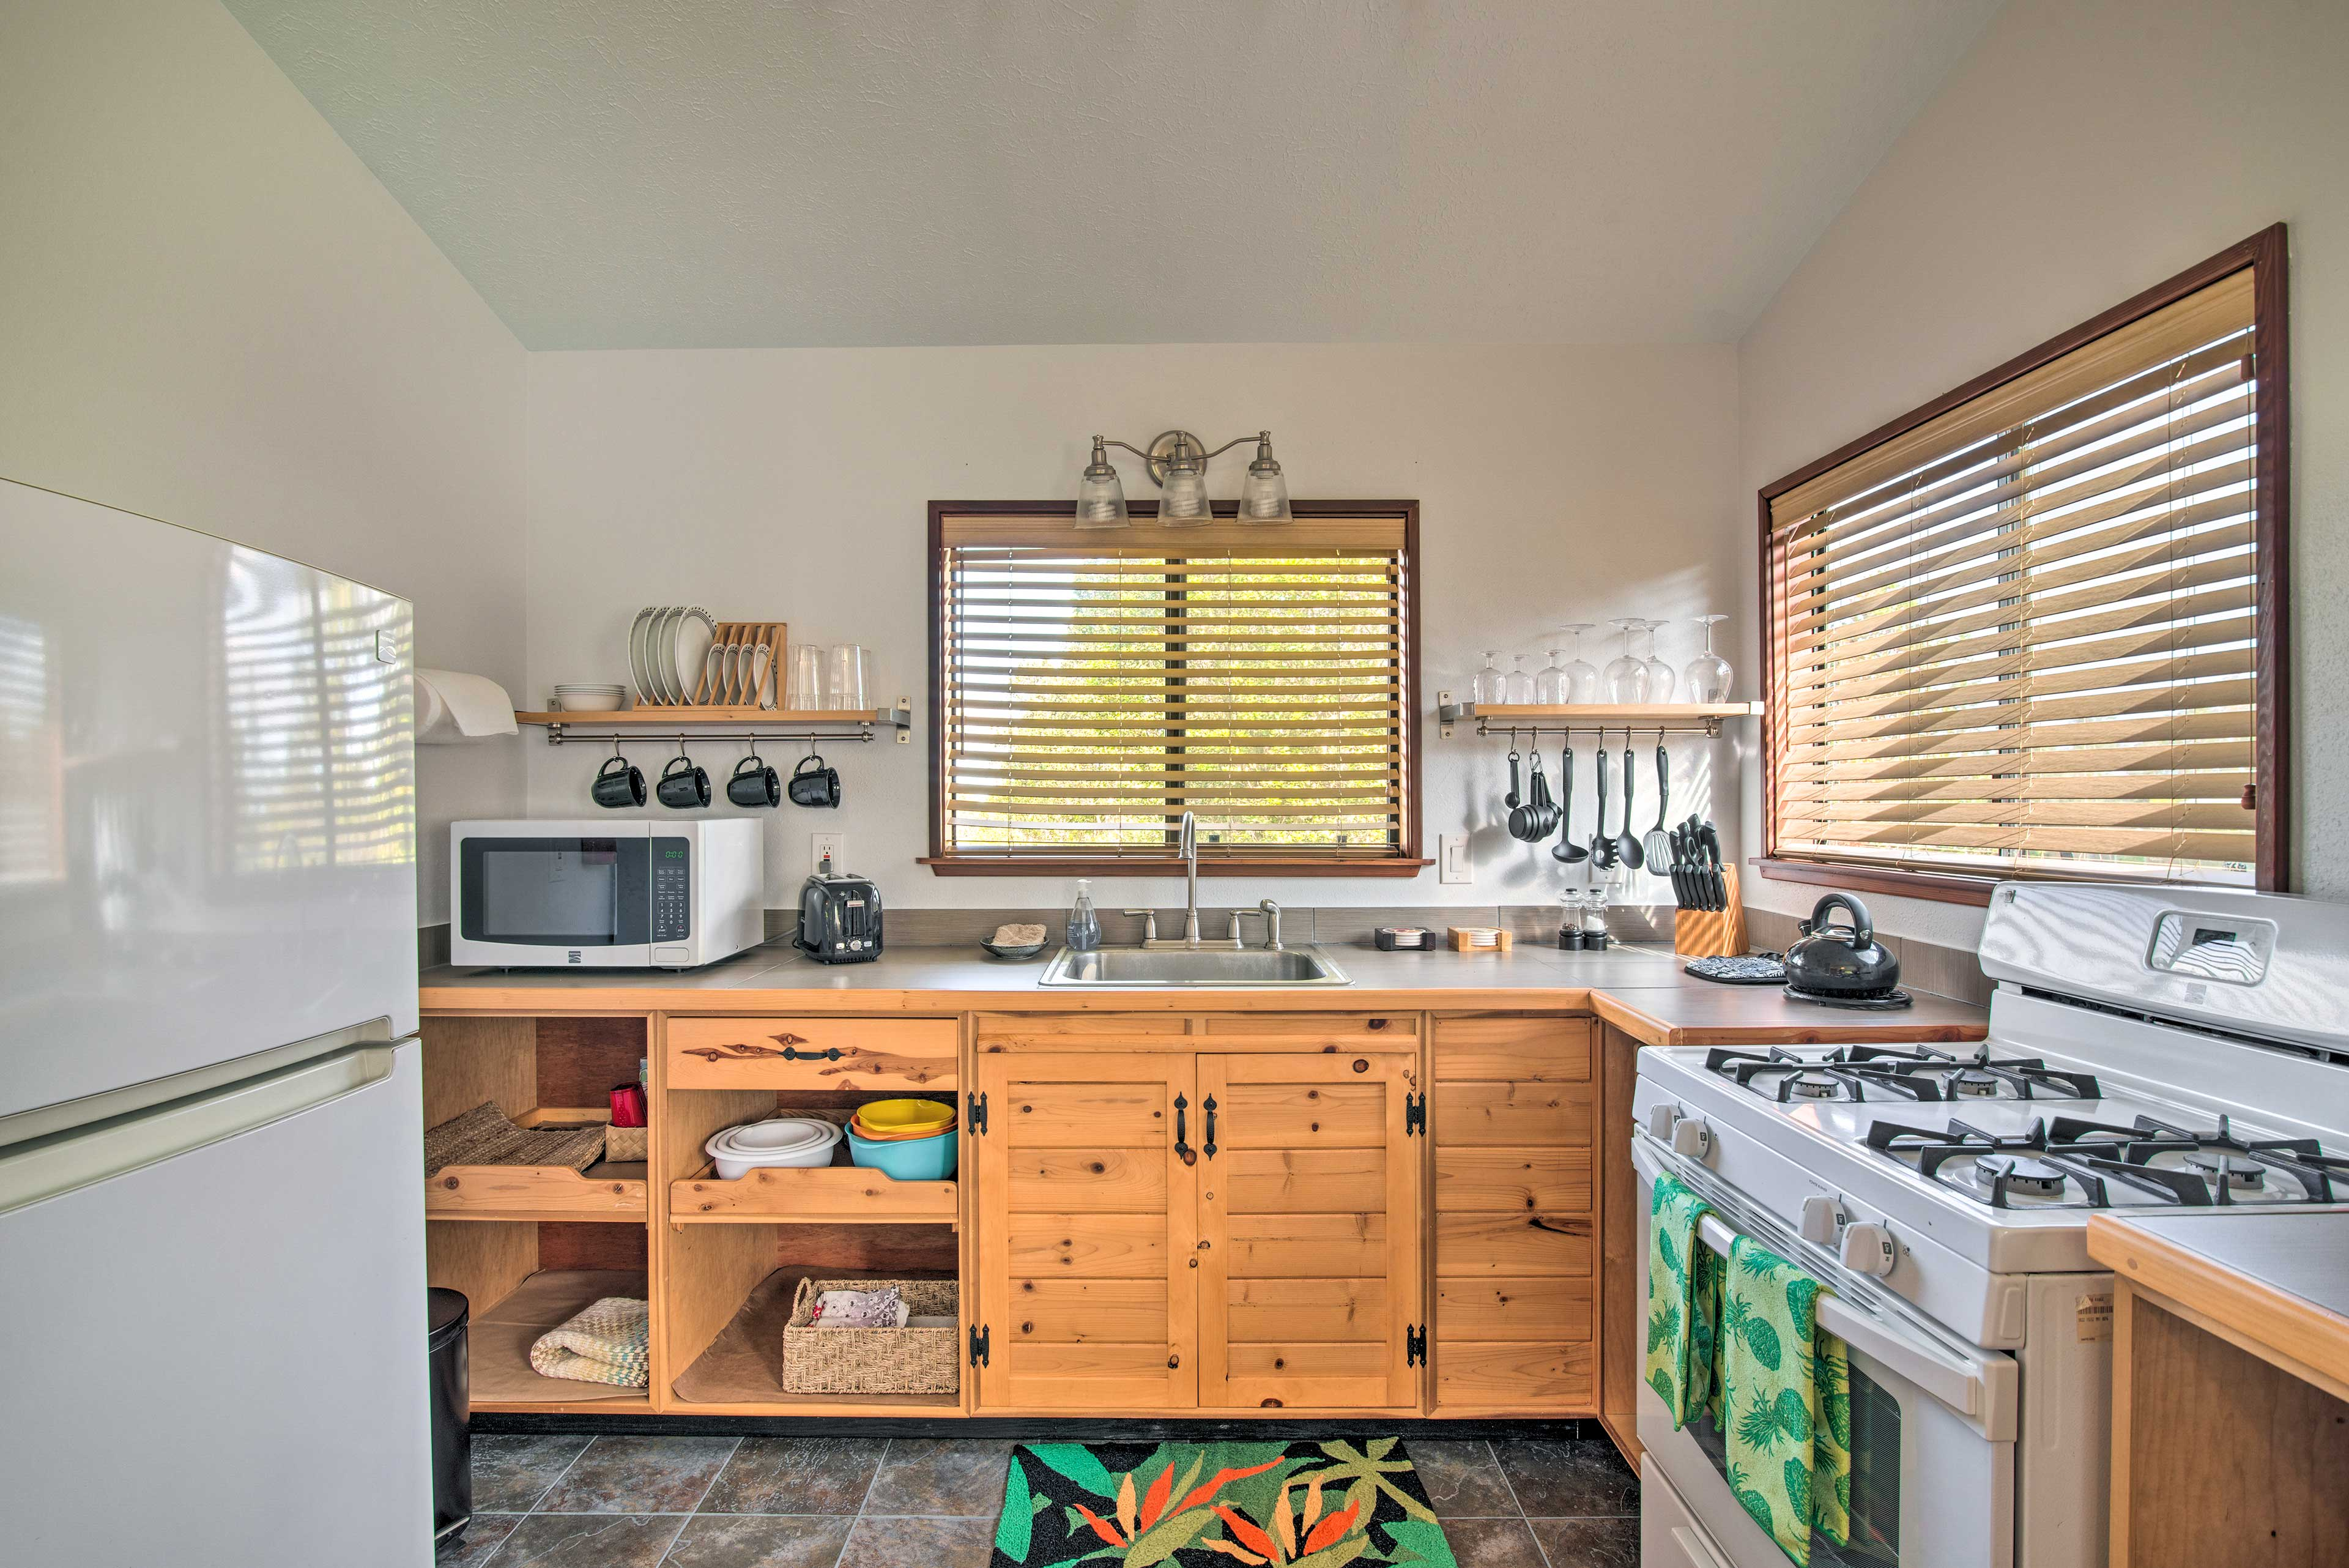 Well-Equipped Kitchen | Water Filter | Trash Bags/Paper Towels Provided